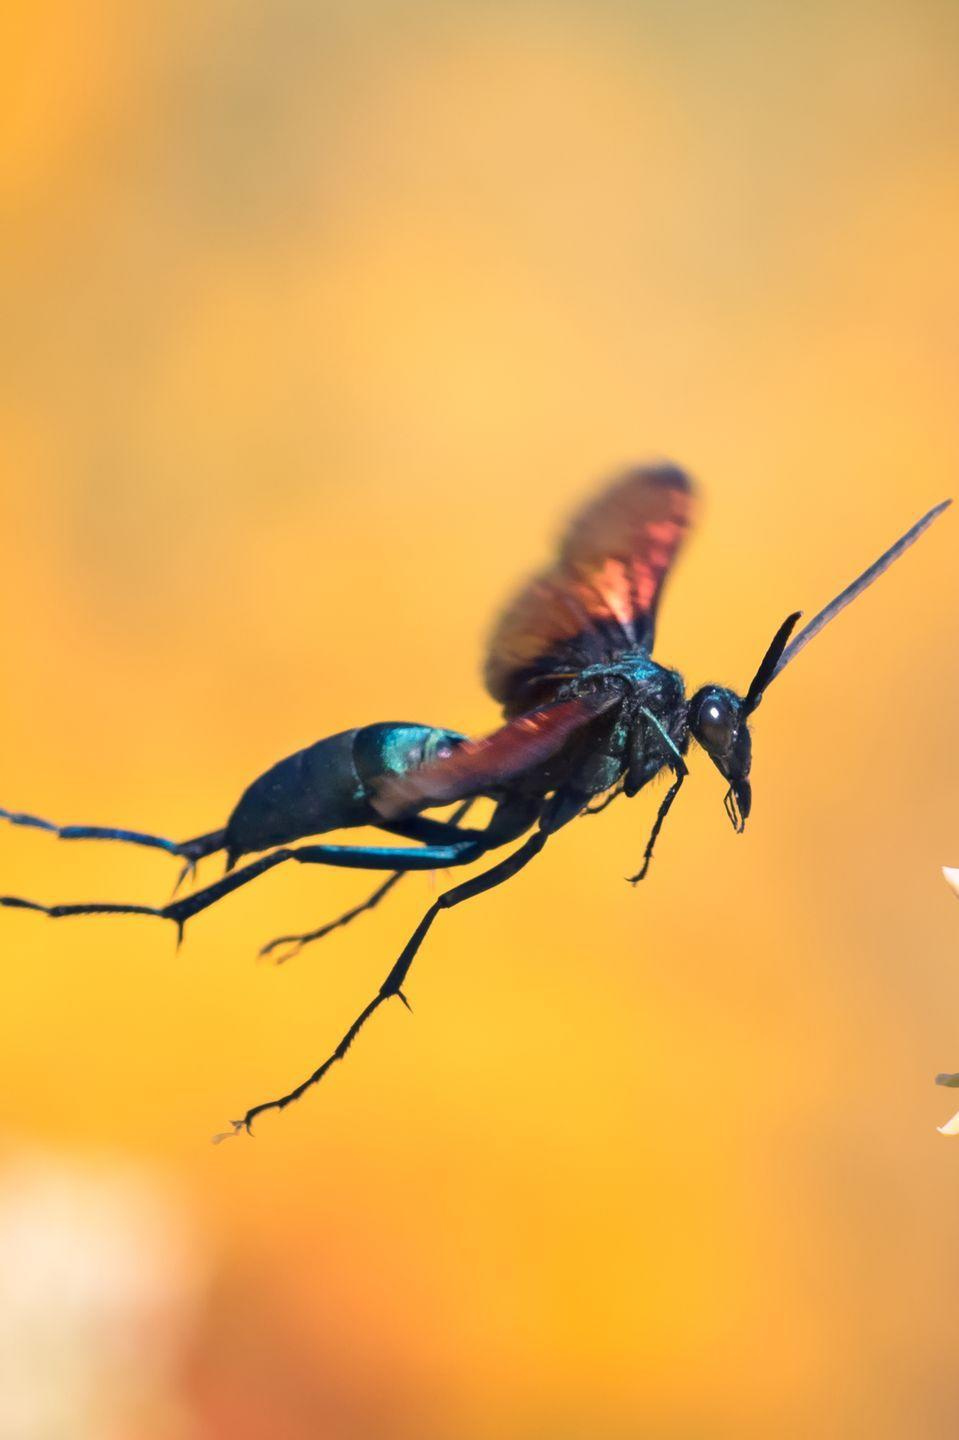 """<p>Don't let the name fool you—it's not a spider or a bird. It's actually a wasp. But this insect leaves one of the most painful bug bites. According to entomologist Justin Schmidt, who created the """"Schmidt sting pain index"""" to measure the severity of bug bites, on a scale of 1 to 4, the tarantula hawk is one of just two insects that scores a 4.</p>"""